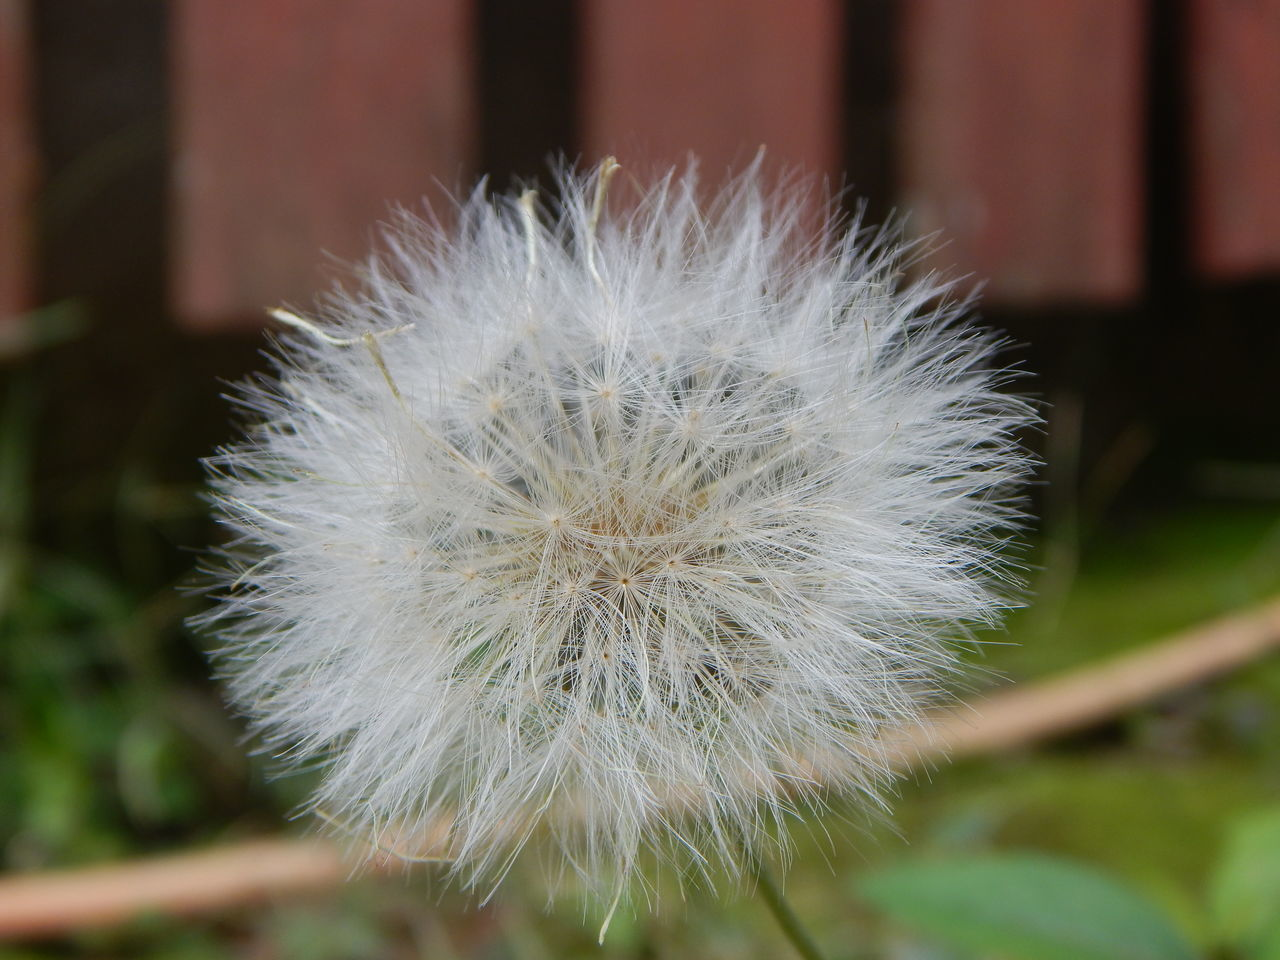 focus on foreground, flower, dandelion, close-up, fragility, nature, white color, beauty in nature, softness, growth, flower head, day, plant, no people, uncultivated, outdoors, freshness